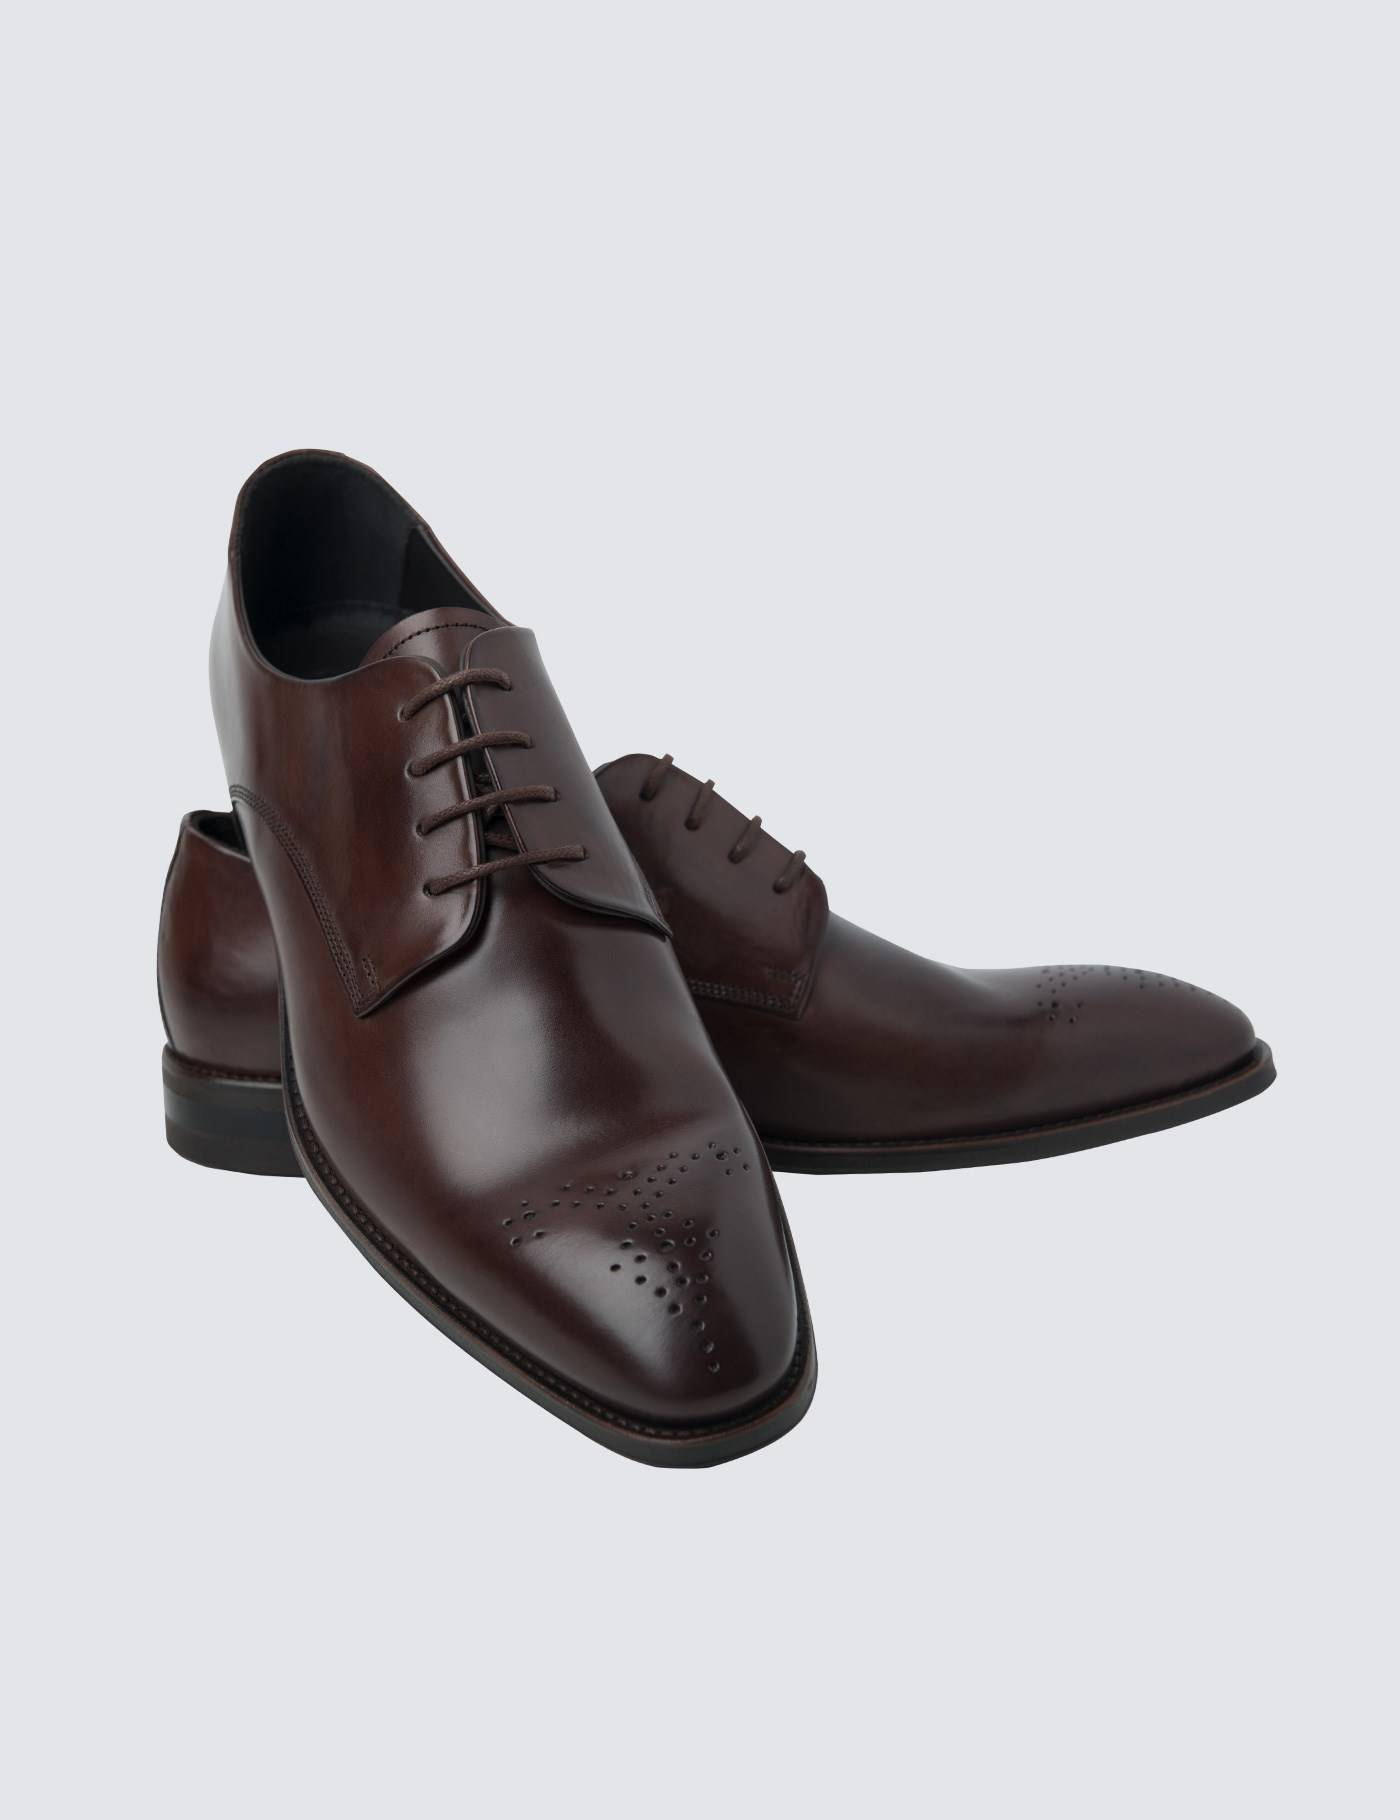 Hawes & Curtis Men's Leather Wholecut Shoes in Brown Size 7